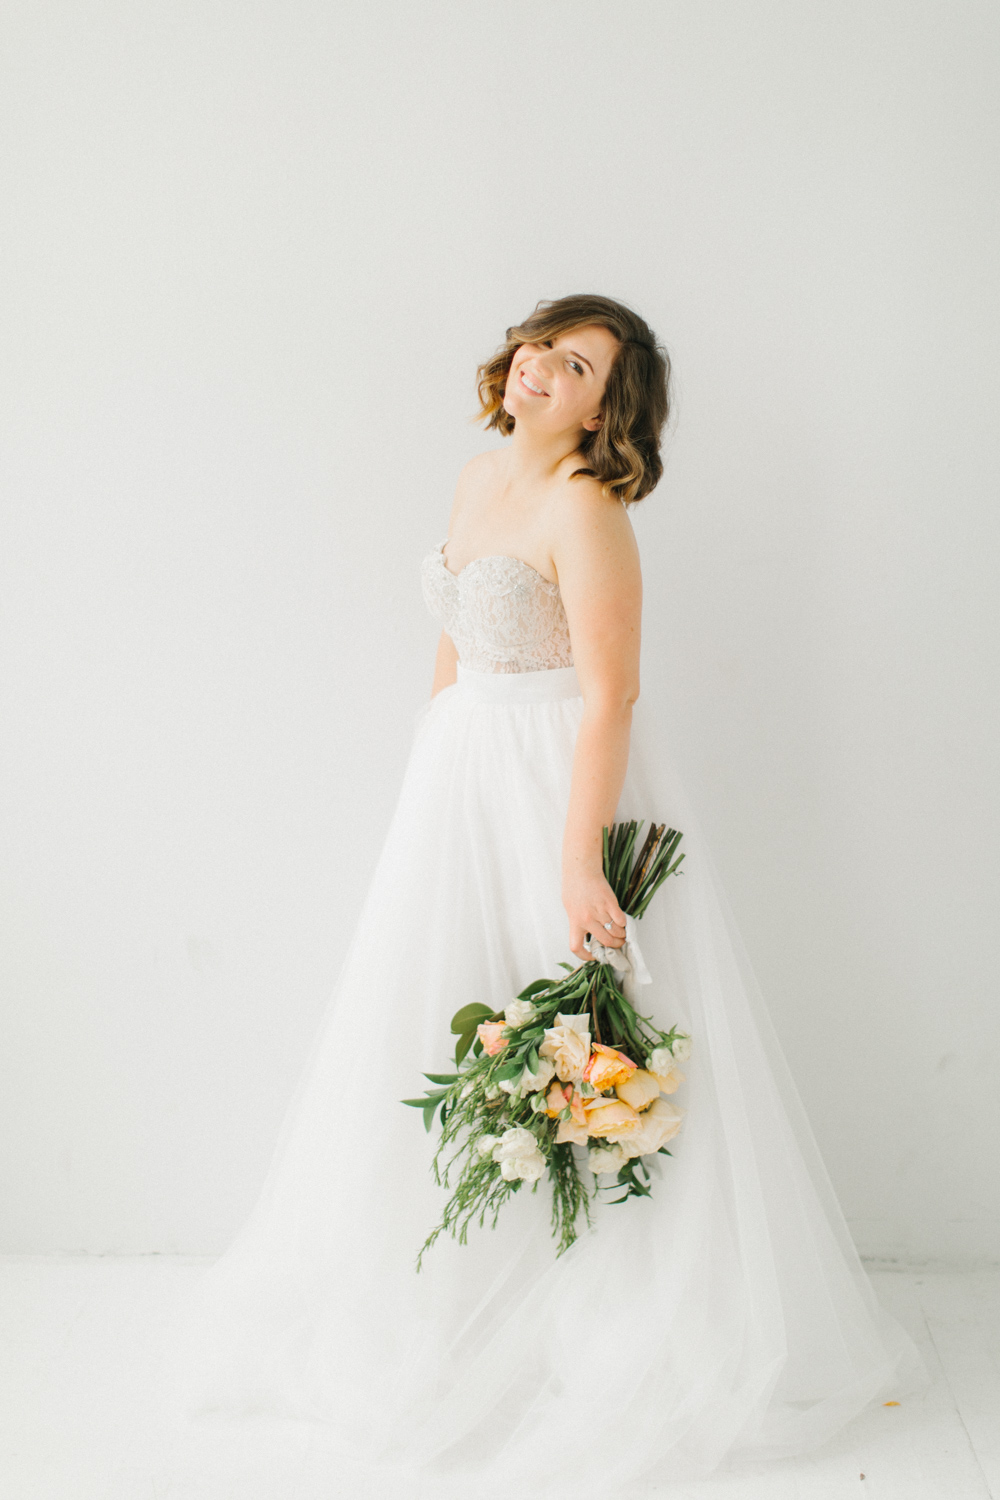 Seattle Fine Art Wedding Photographer | Seattle Downtown White Studio Bridal Session | Stunning Wedding Bouquet | Seattle Bride | Seattle Wedding | Photography Studio Space | Emma Rose Company Wedding Photography-25.jpg